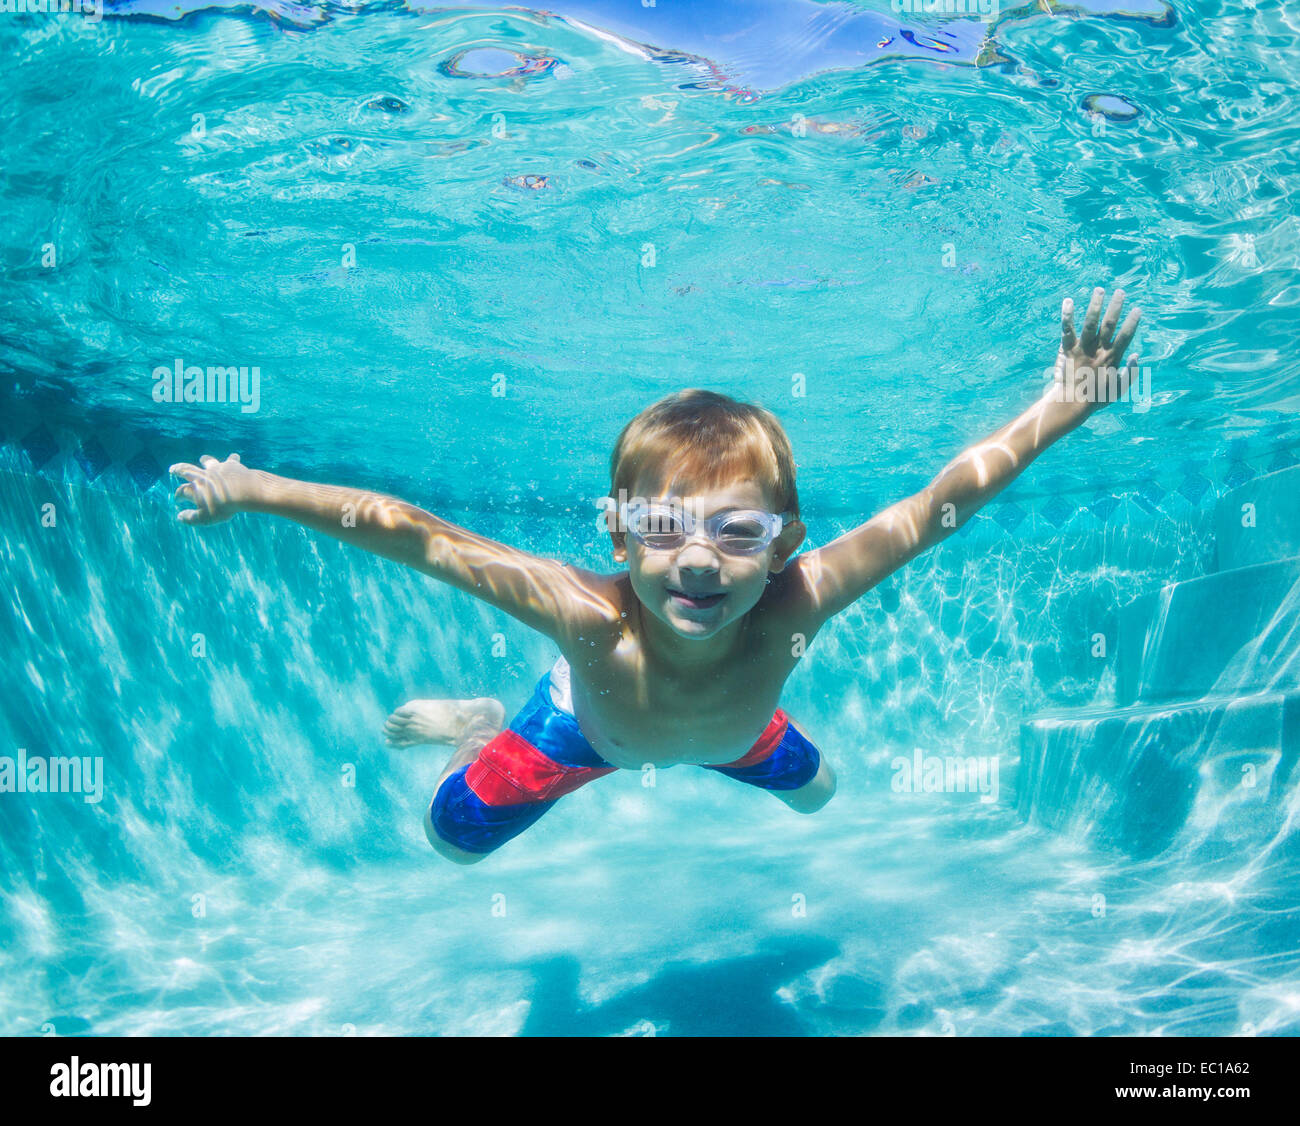 Underwater Young Boy Fun in the Swimming Pool with Goggles. Summer Vacation Fun. - Stock Image